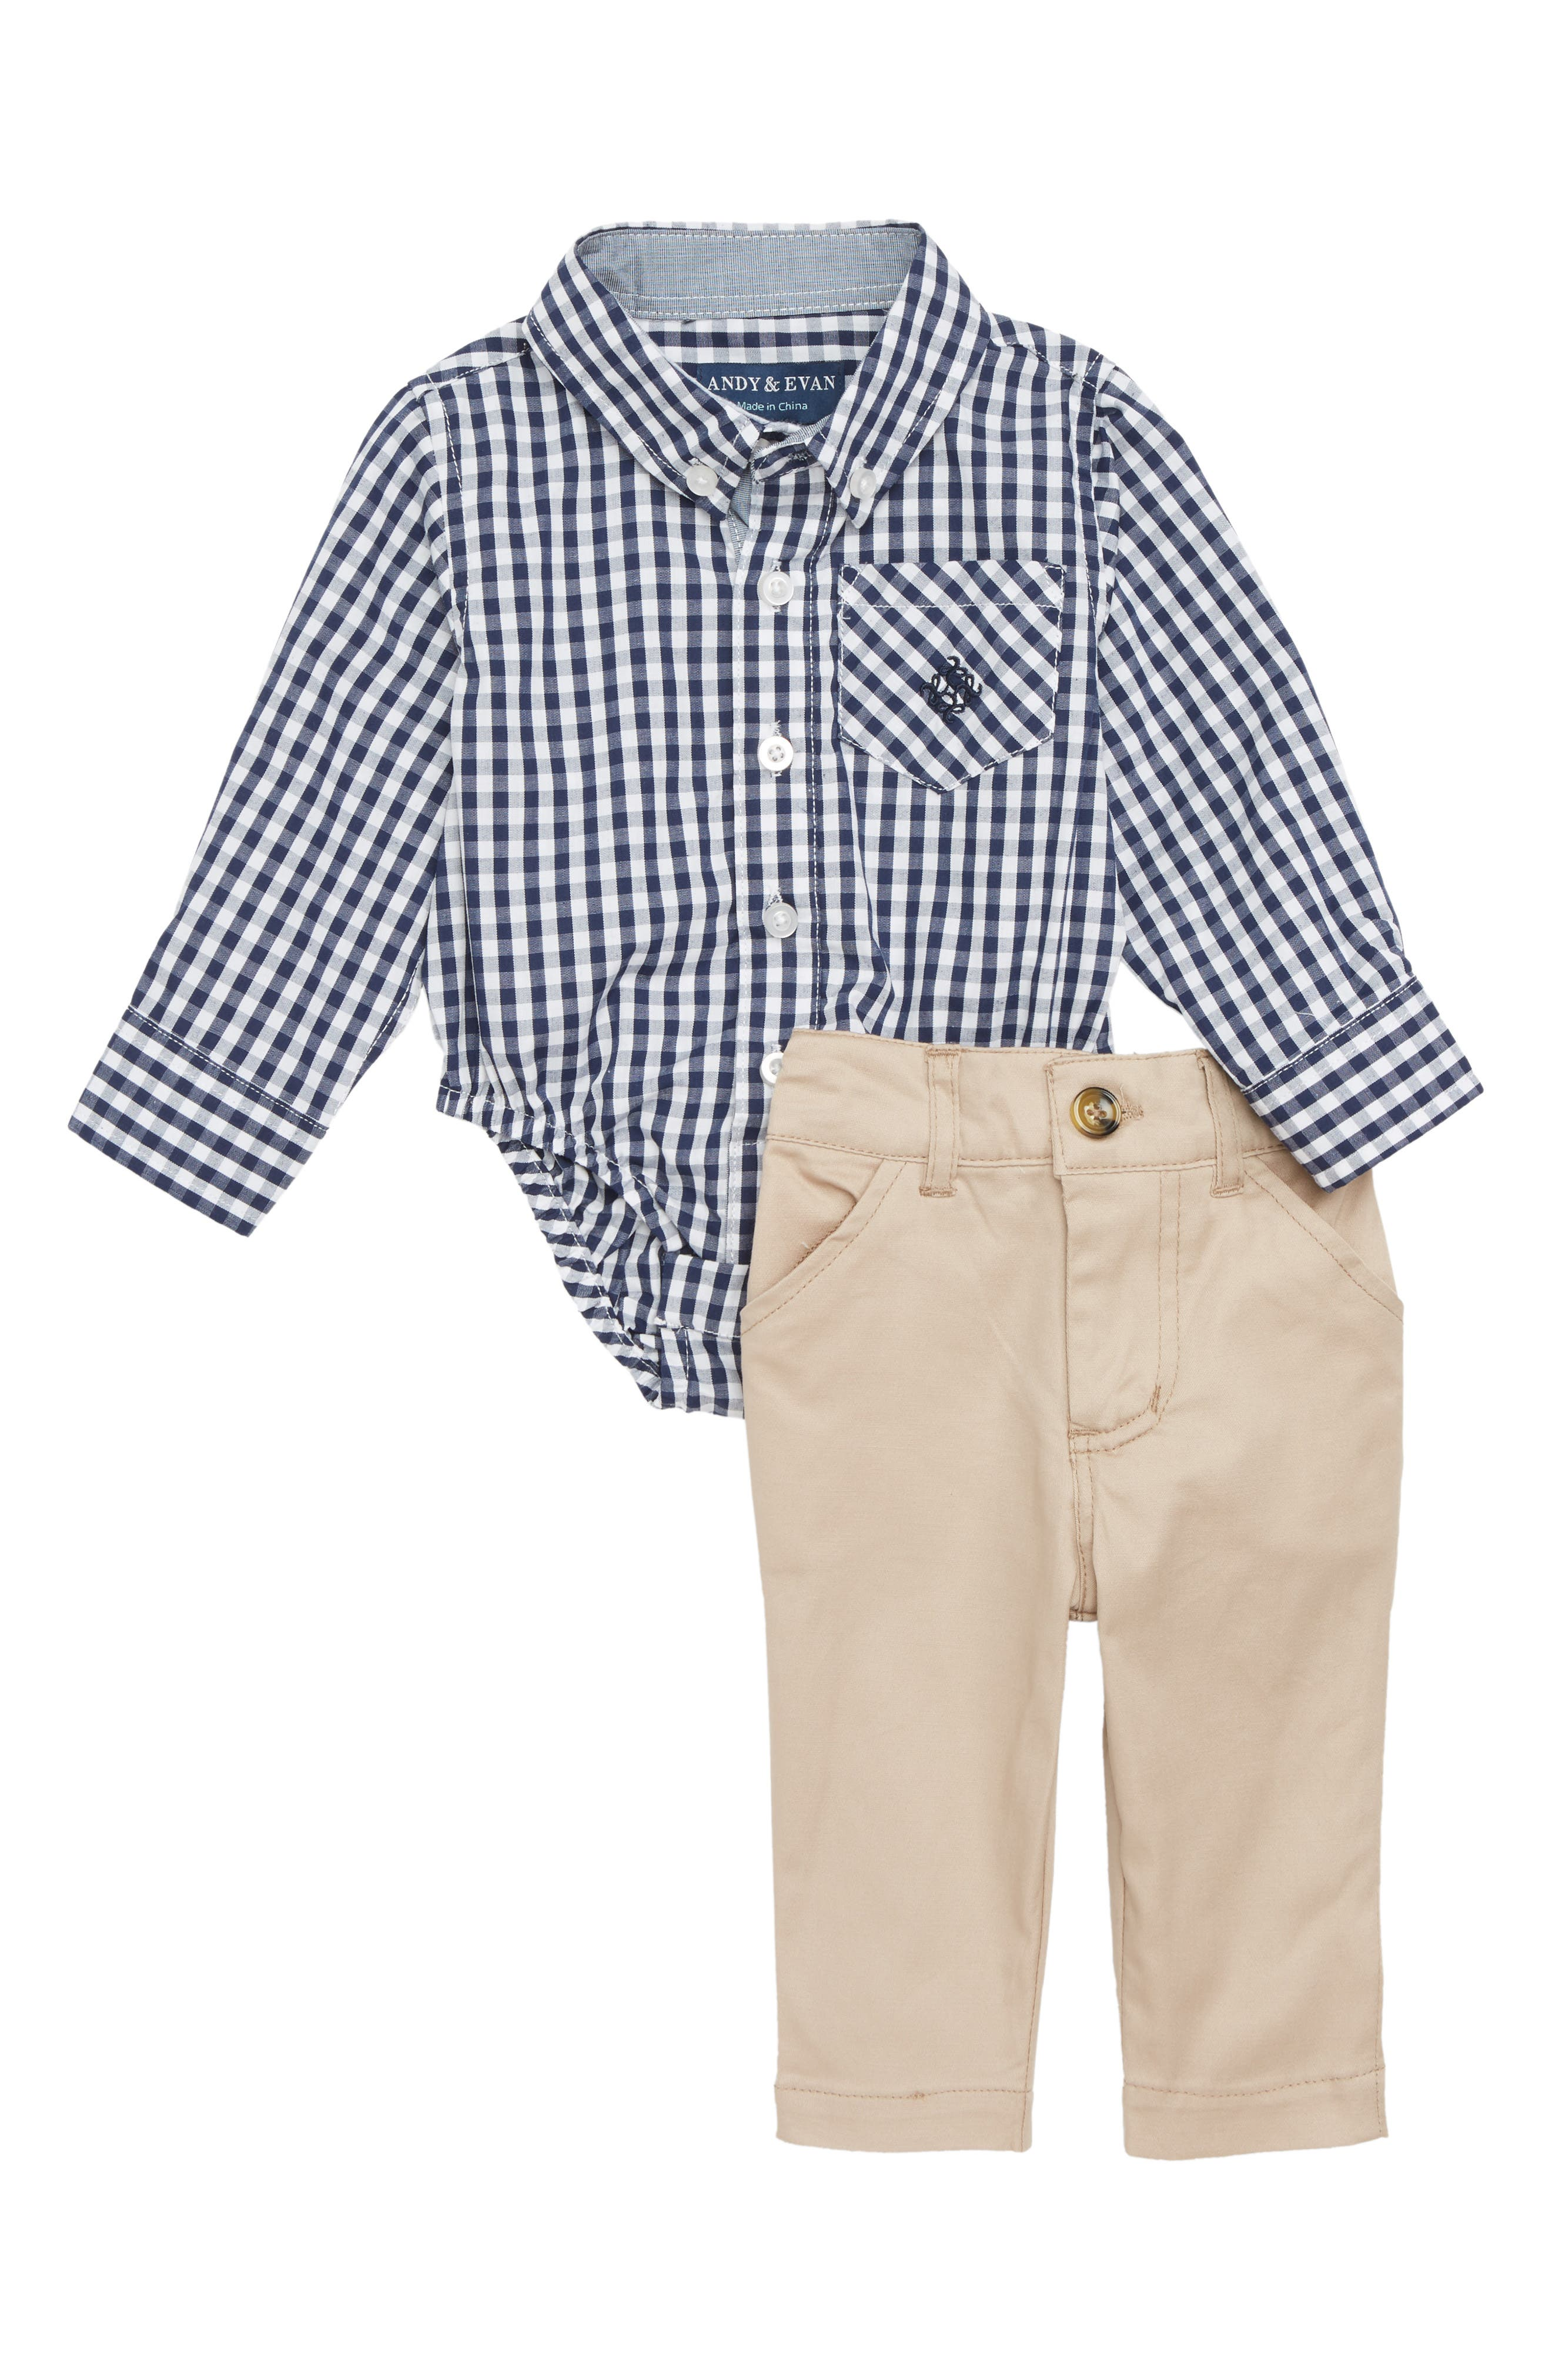 Alternate Image 1 Selected - Andy & Evan Shirtzie Gingham Check Bodysuit & Pants Set (Baby Boys)